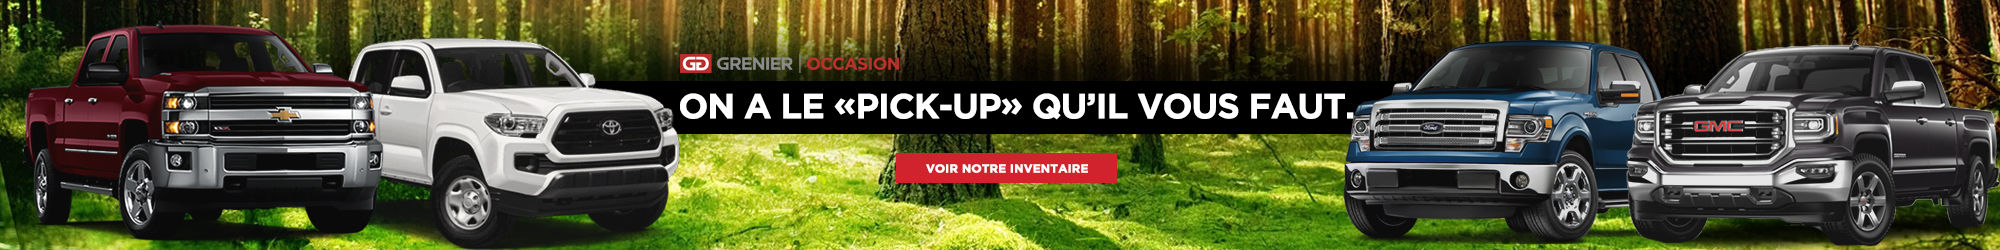 On a le ''pick-up'' qu'il vous faut!